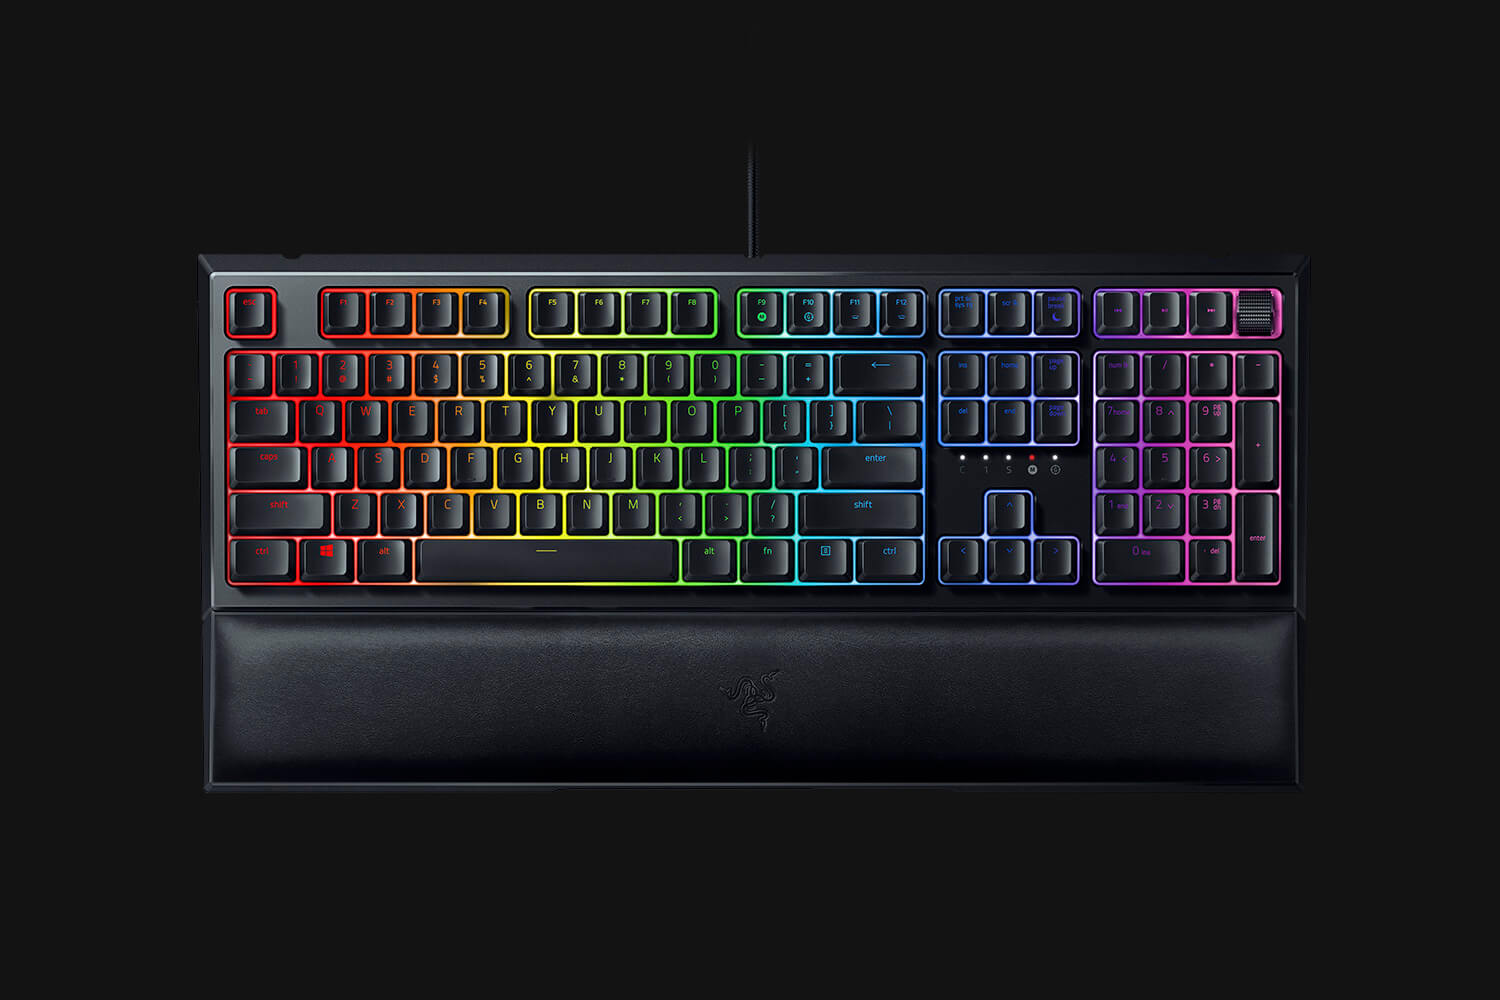 Razer Ornata V2 Keyboard